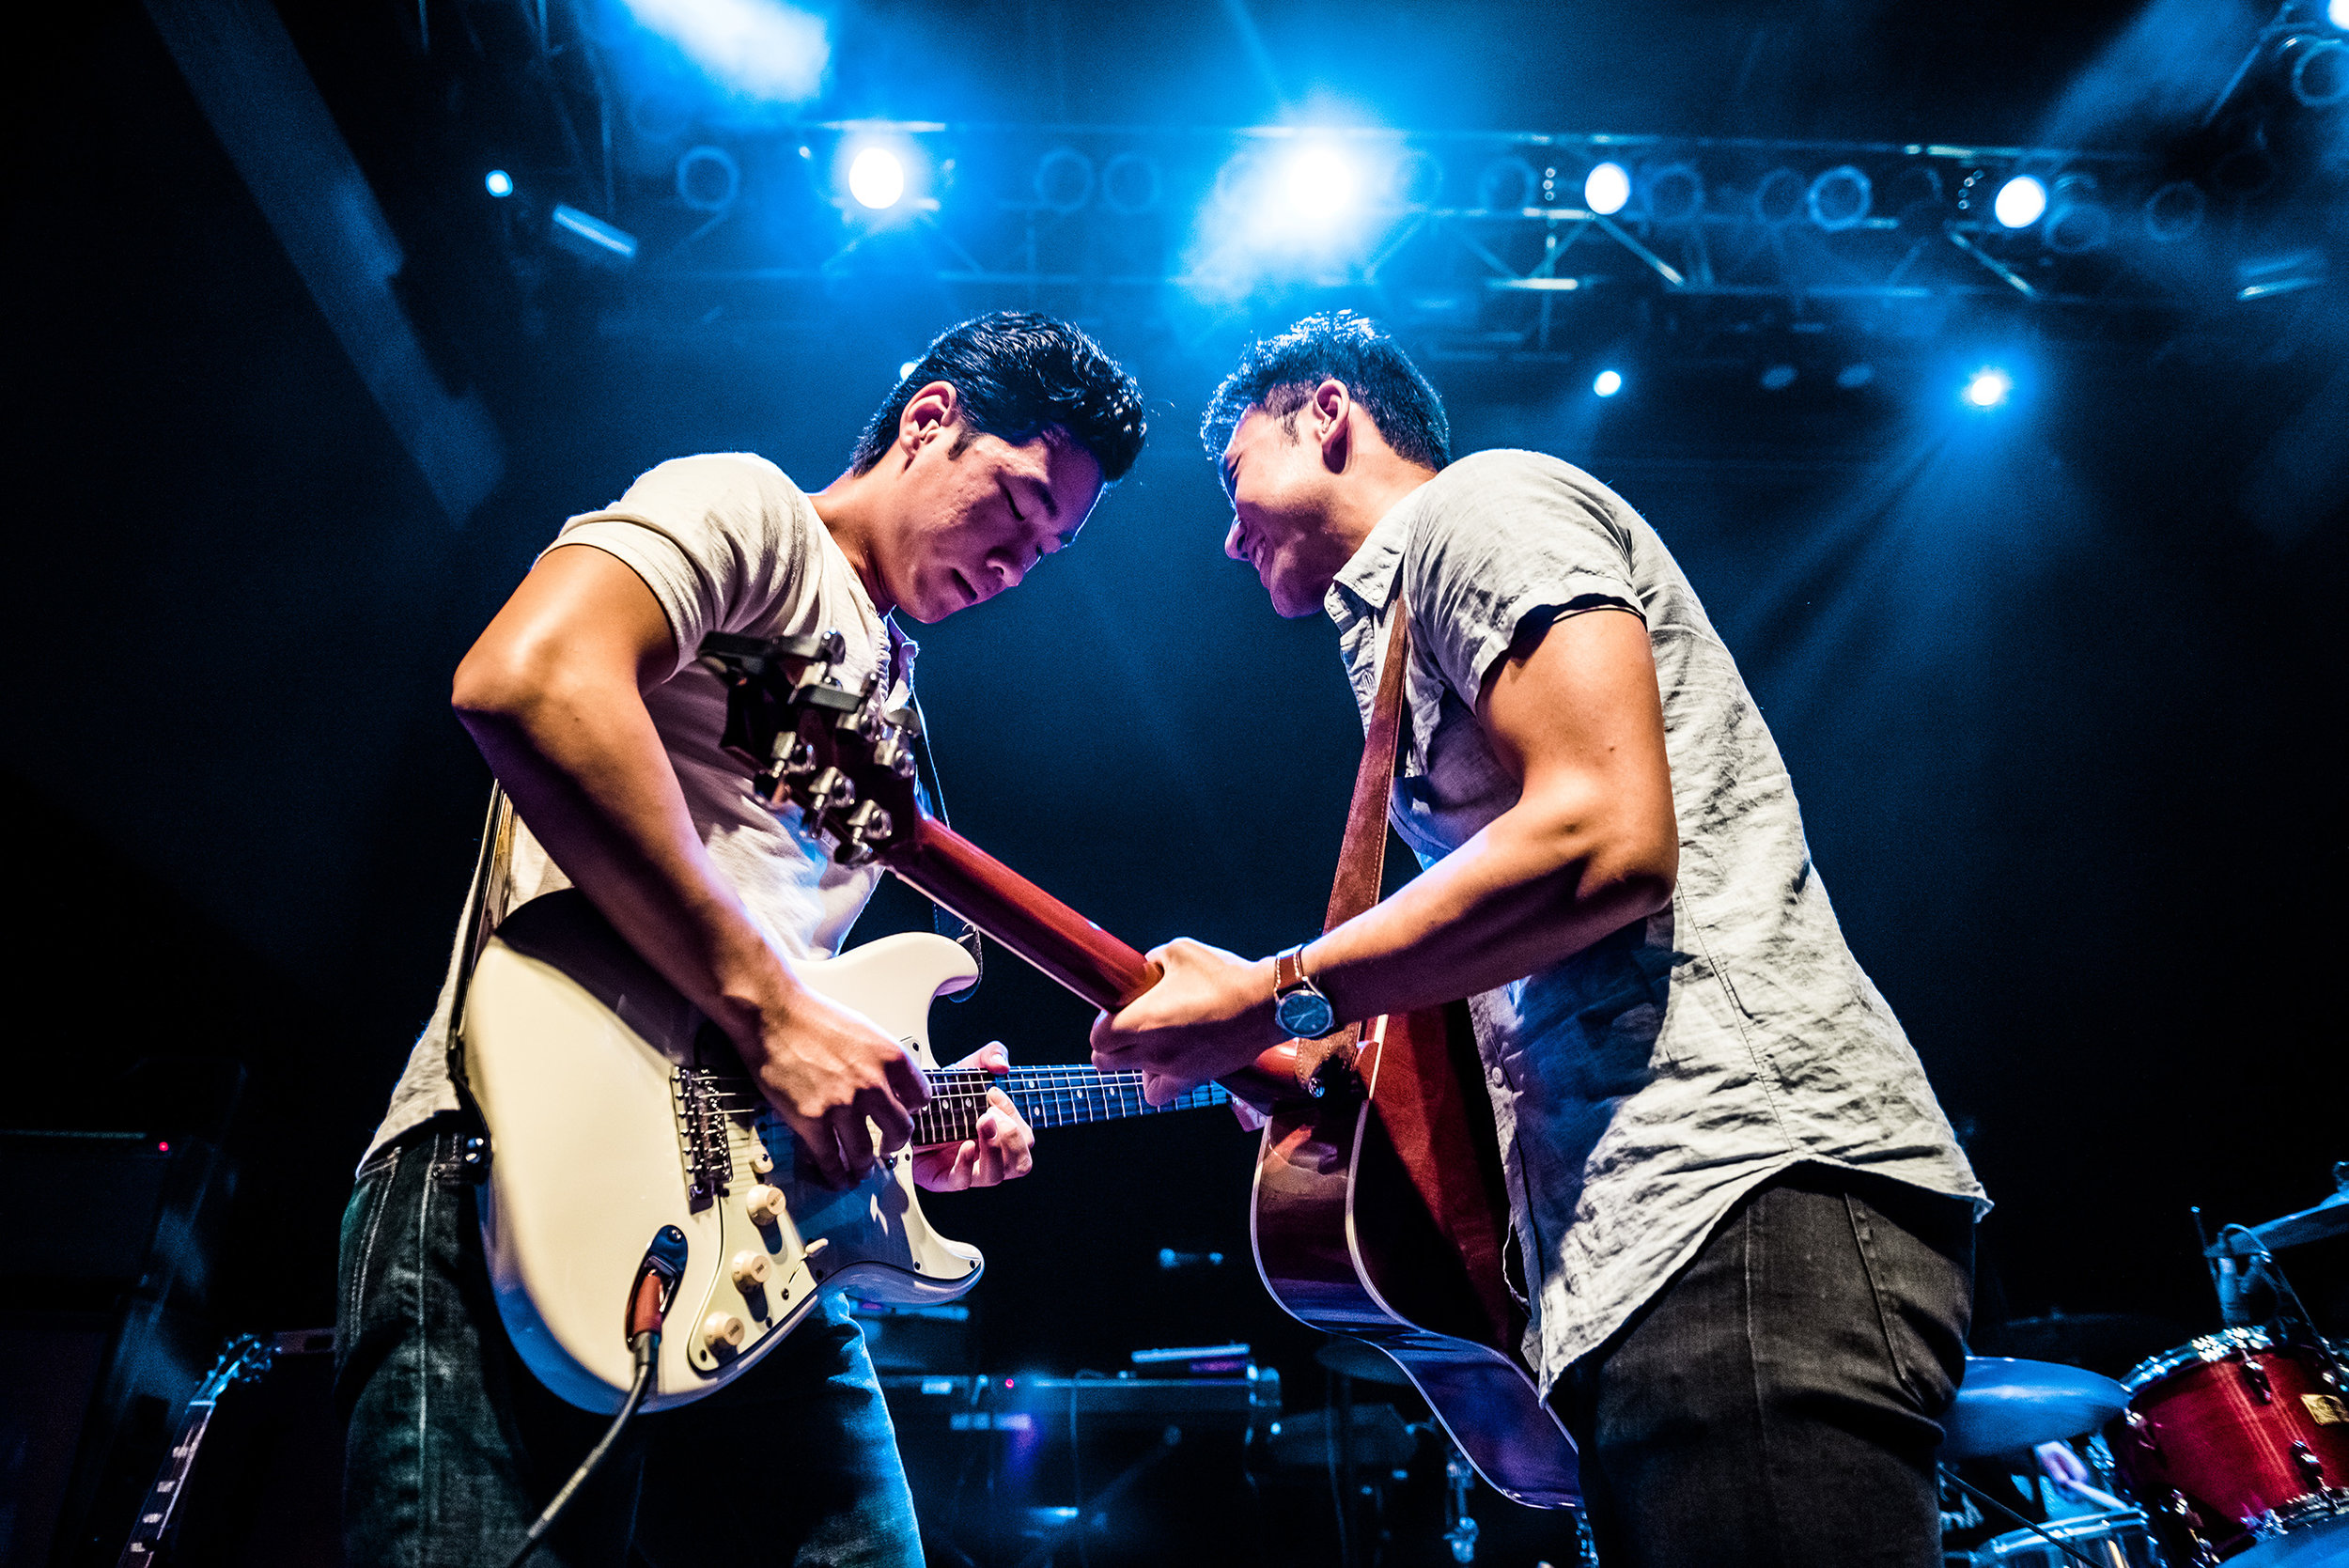 Skyline Hotel - 930 Club - Jeff and Jon Lee.jpg